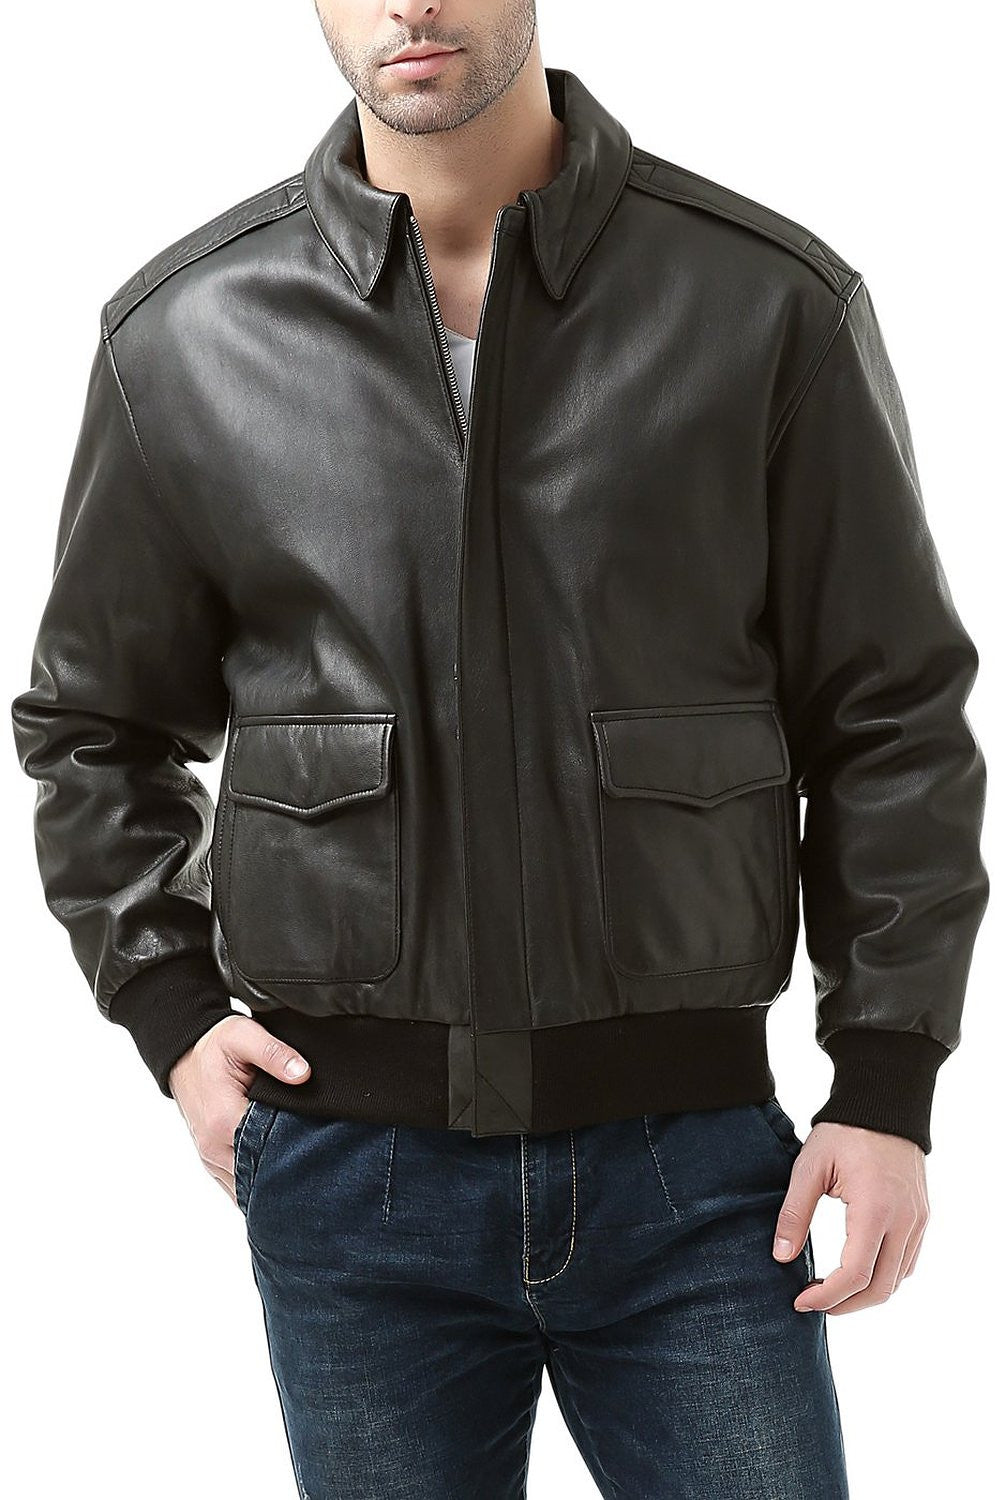 Landing Leathers Men's Premium Air Force A2 Goatskin Leather Flight Bomber Jacket (A-2) - Tall Long